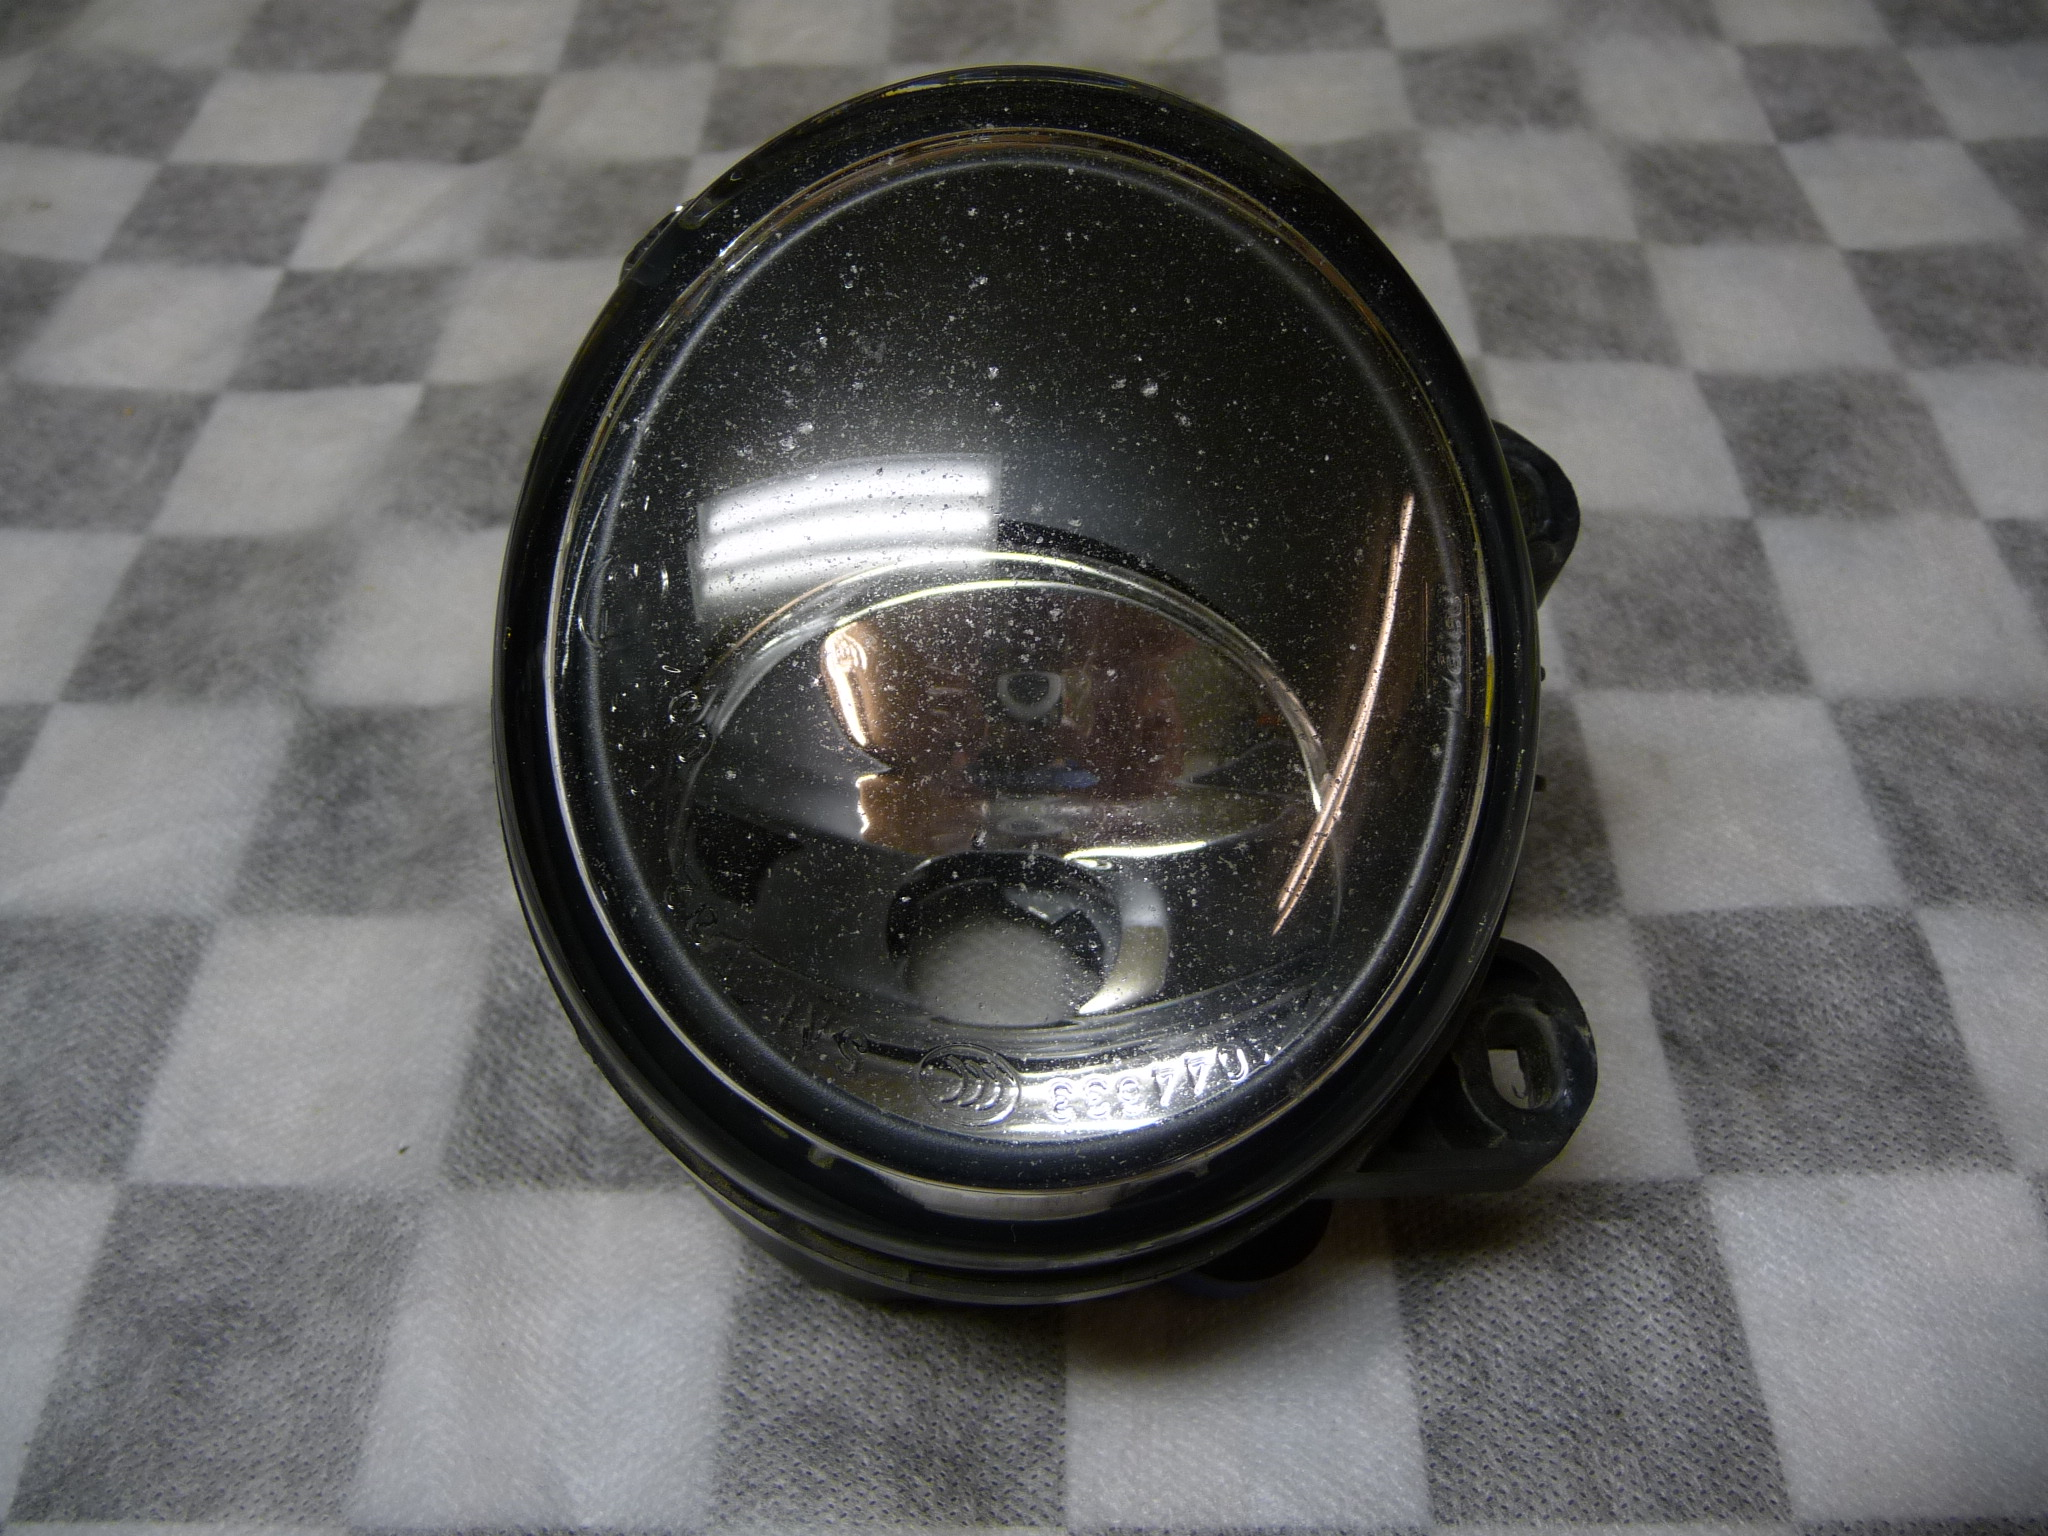 2008 2009 2010 2011 2012 2013 2014 2015 BMW 2 3 Series F22 E92 E93 Front Right Passenger Side Fog Light 63177839866 OEM